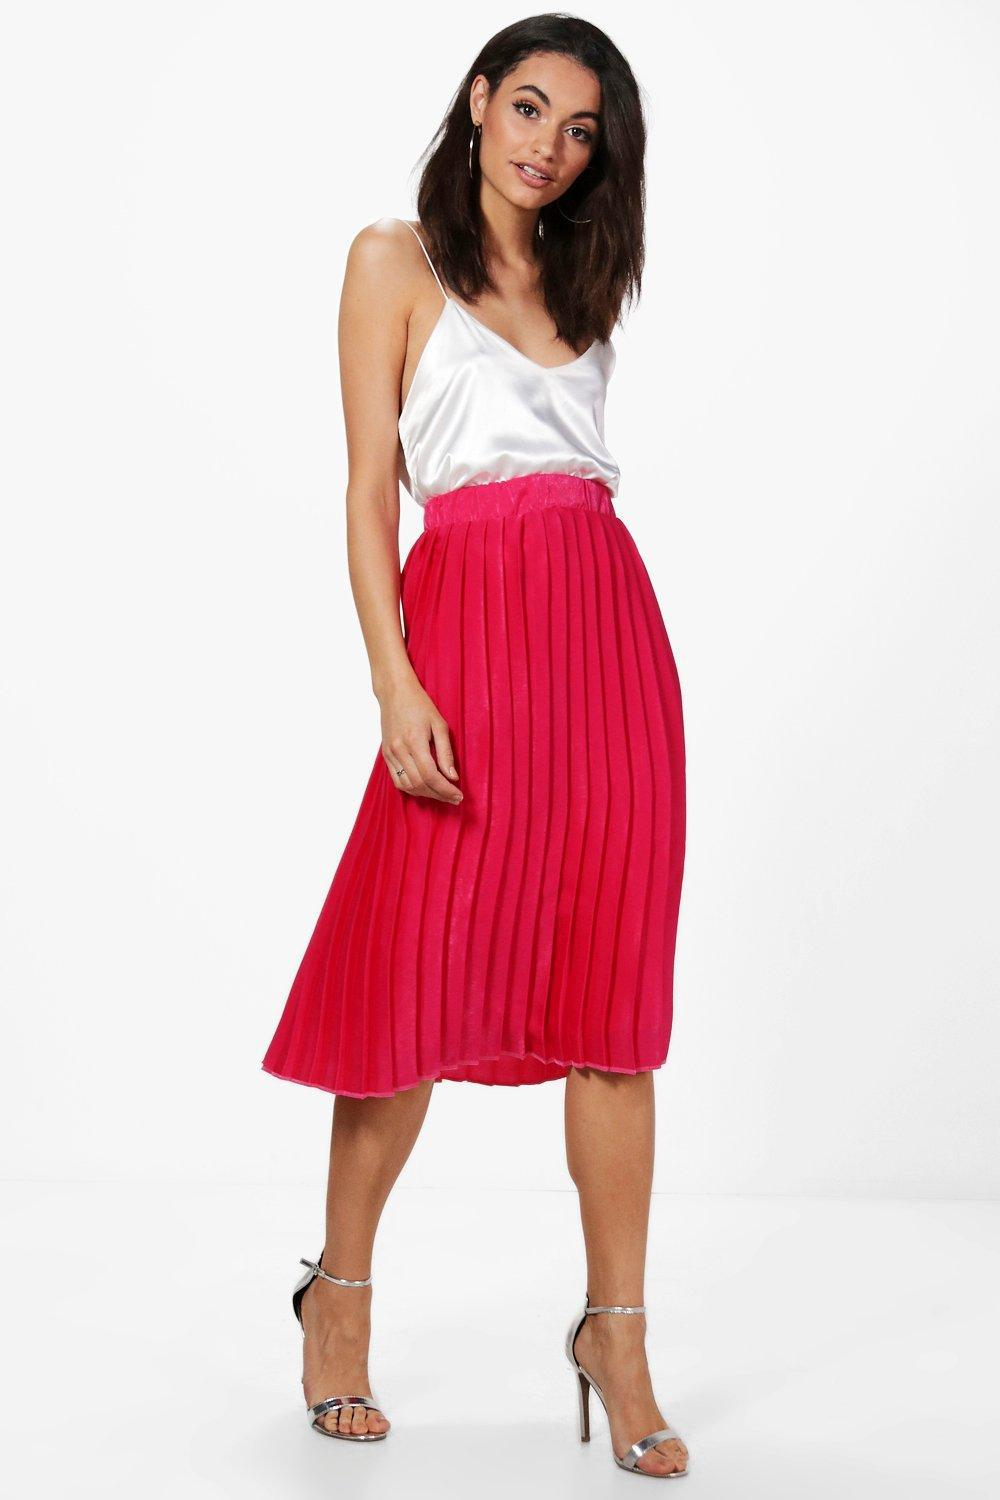 30a1dac46d Gallery. Previously sold at: Boohoo · Women's Midi Skirts Women's Pleated  ...